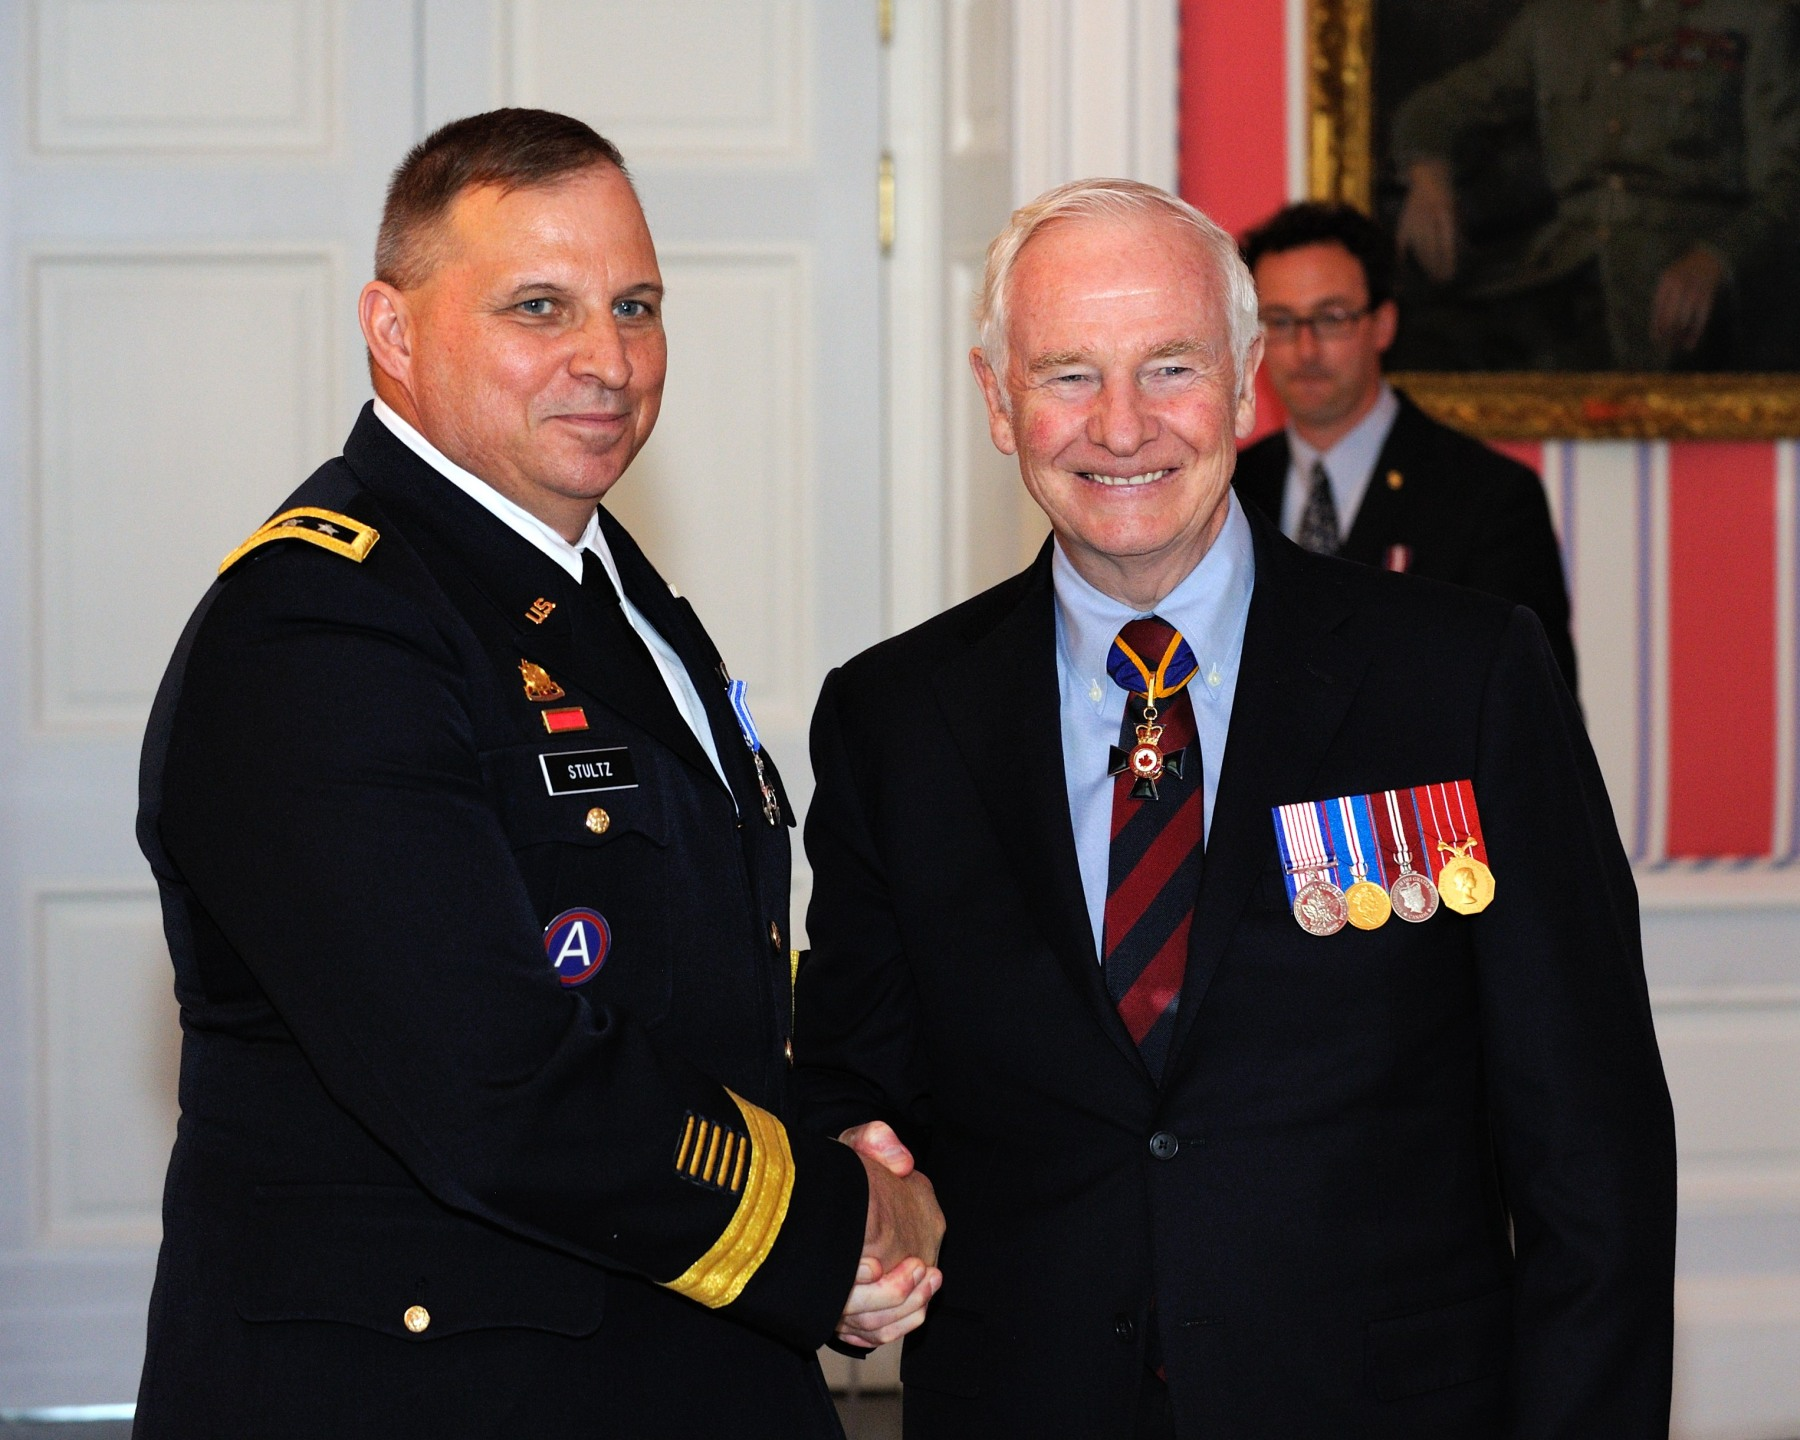 Lieutenant-General Jack Calvin Stultz, M.S.M. (United States Army Reserve), received the Meritorious Service Medal (Military Division) from His Excellency. In his role as commanding general, United States Army Reserve, Lieutenant-General Stultz was instrumental in enhancing the working relationship between the army reserves of both Canada and the United States. From the beginning of his appointment in 2006, he orchestrated the creation of training and employment opportunities for Canadian Army reservists. In so doing, Lieutenant-General Stultz further enhanced the unique relationship between Canada and the United States, delivering considerable benefit to the Canadian Forces.